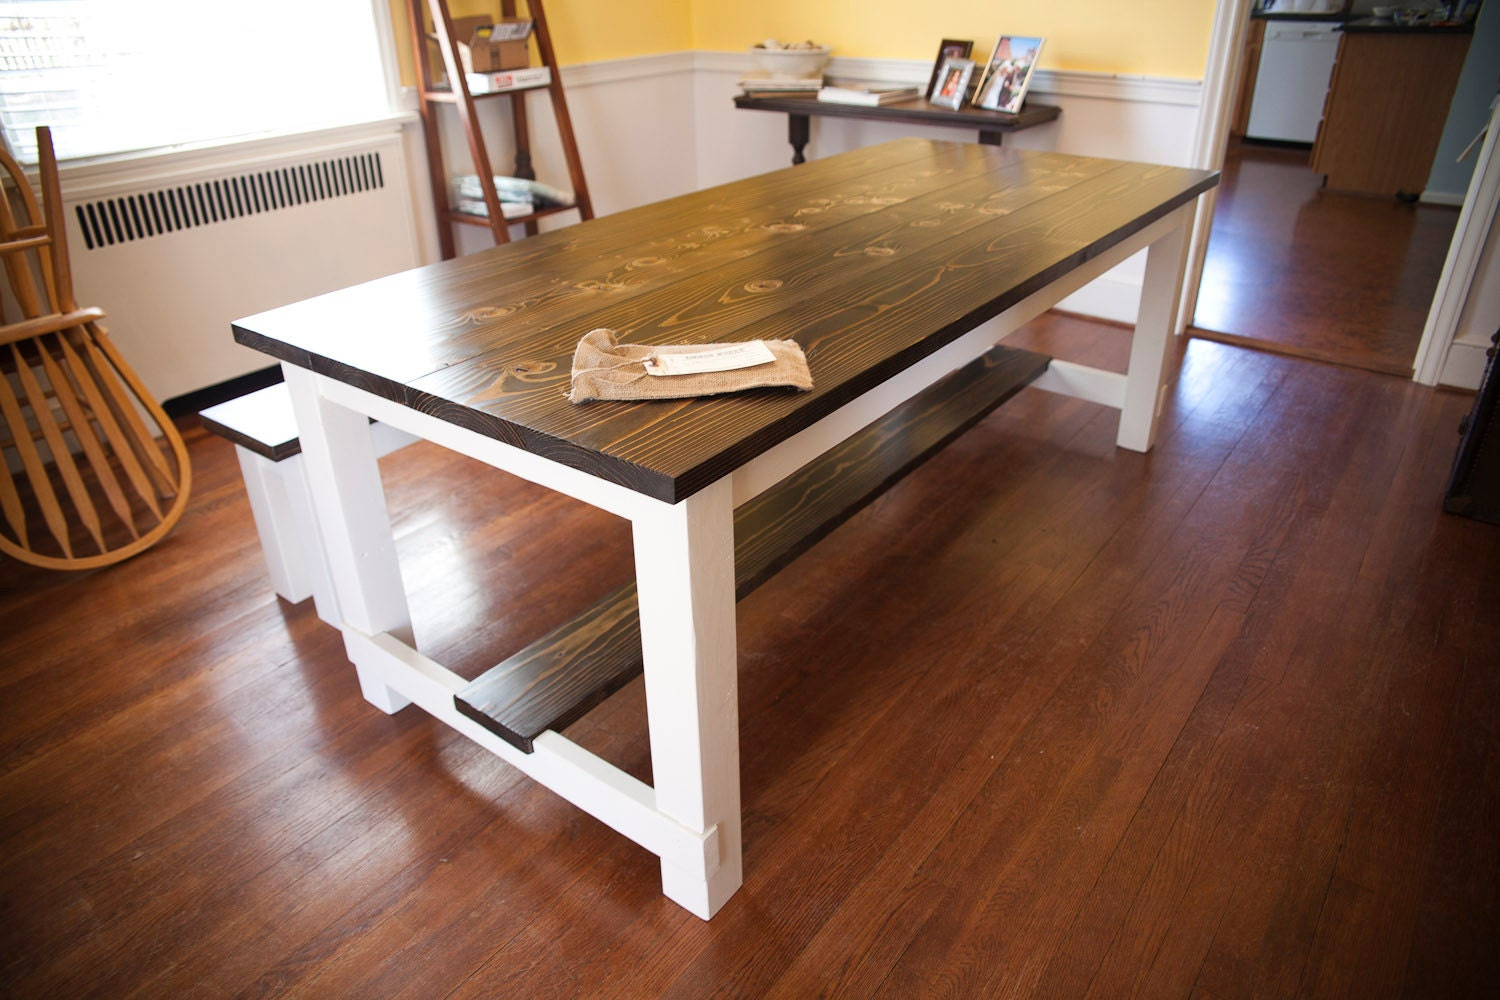 8 Farmhouse Table with Stretchers Farmhouse Dining by EmmorWorks